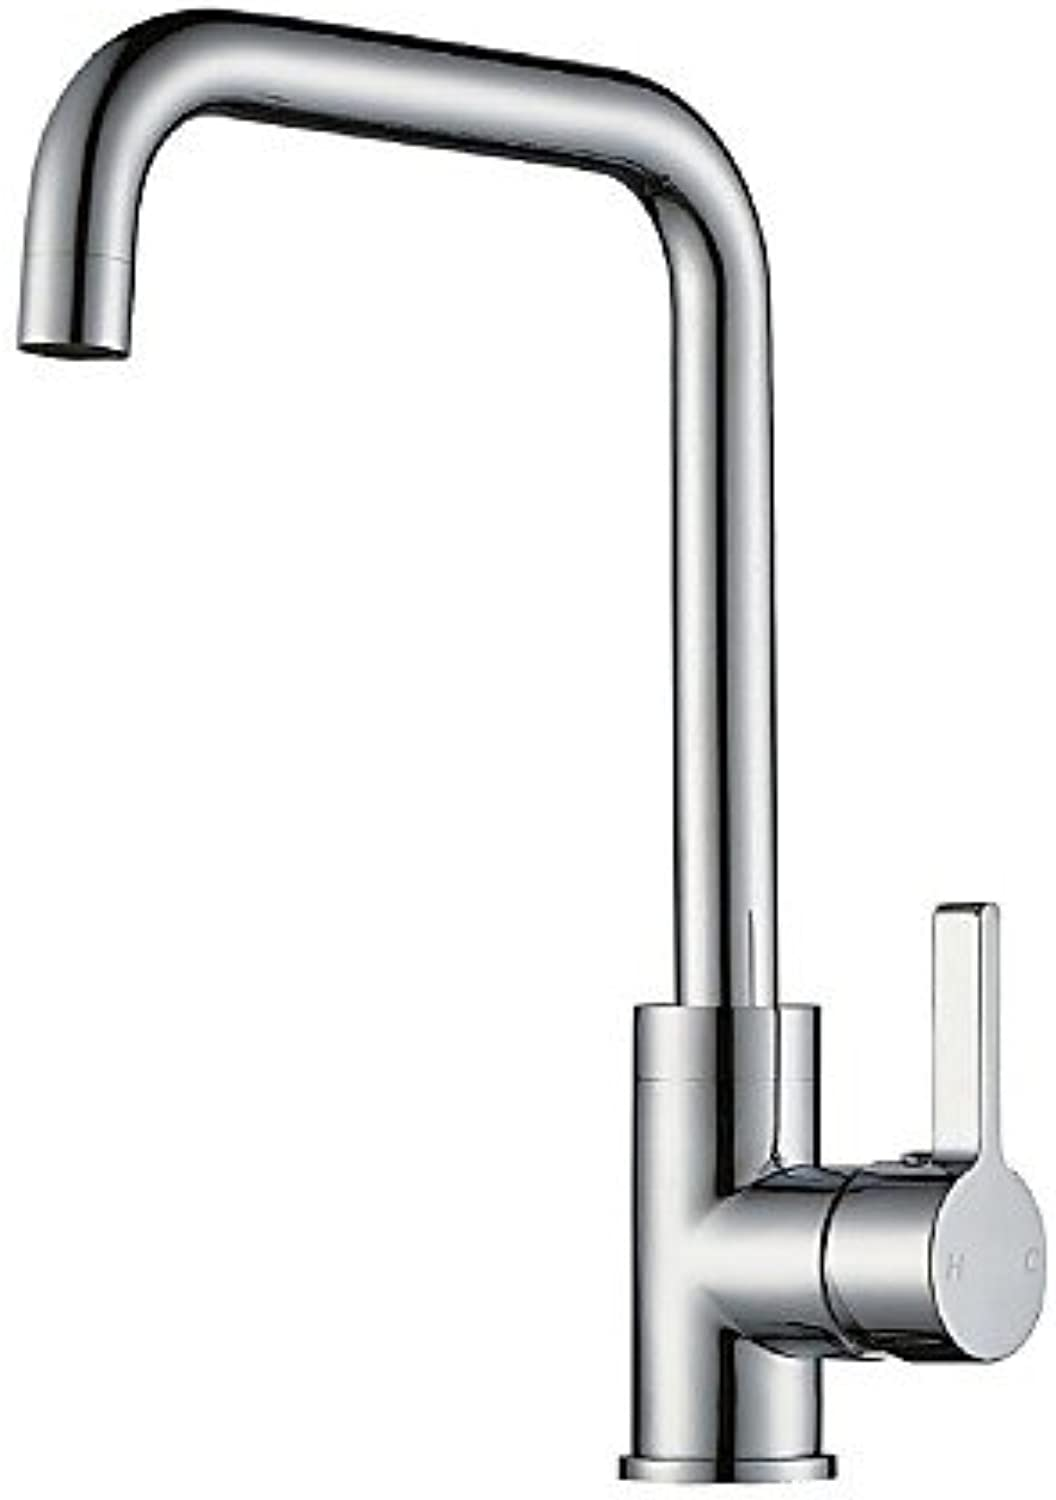 Bbslt-0.5?Brass of Contemporary Kitchen Faucet (Stainless Steel) Cold and Hot Water Kitchen Faucet